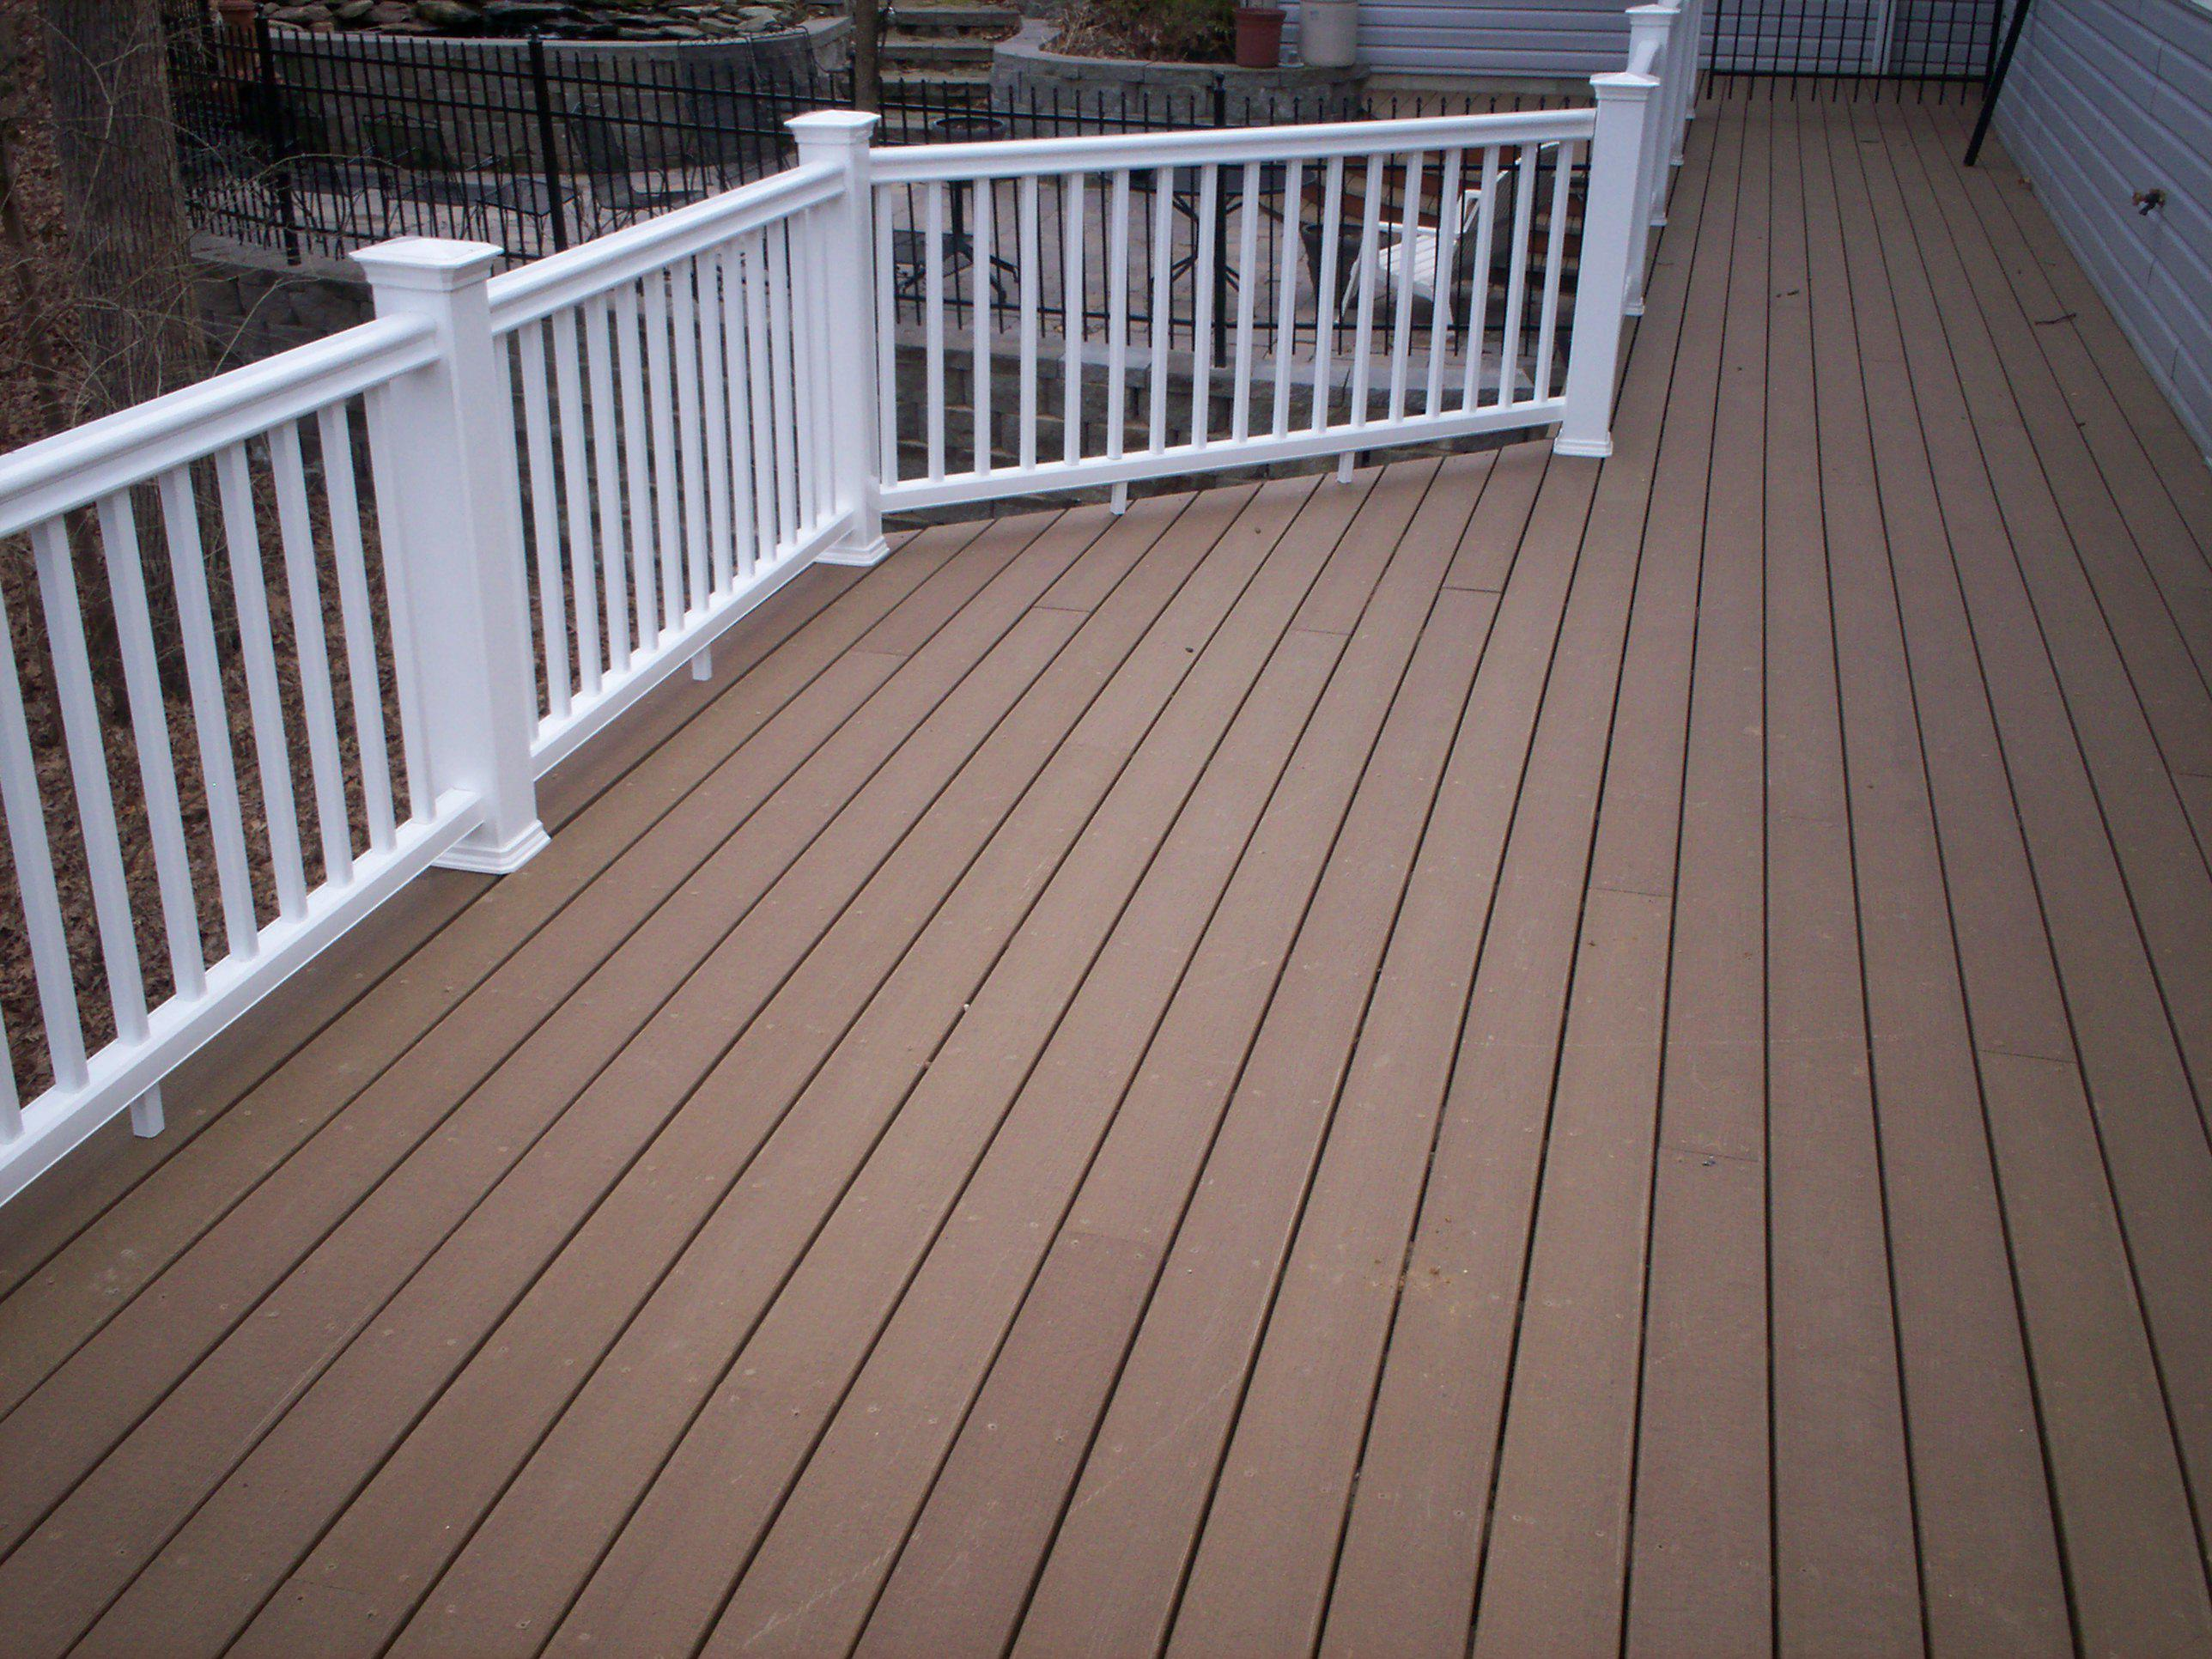 Veranda Deck Boards | Composite Lumber 2x4 | Veranda Composite Decking